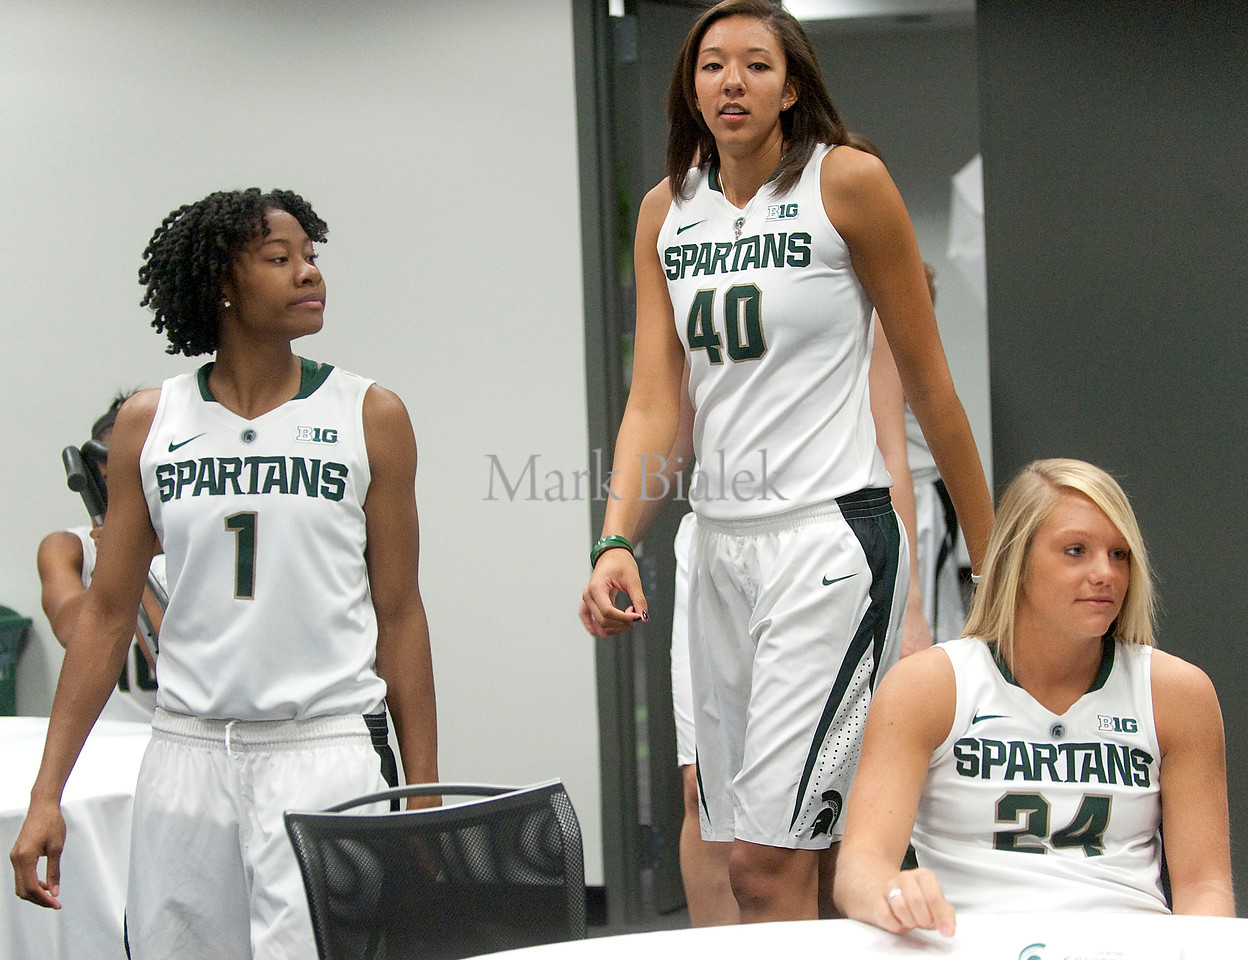 From left, Jasmine Thomas, Madison Williams, and Courtney Schiffauer get ready for interviews during the Michigan State University women's basketball media day at the Breslin Center in East Lansing, MI on Oct 8, 2012.  (Mark Bialek / Special to the Det News)